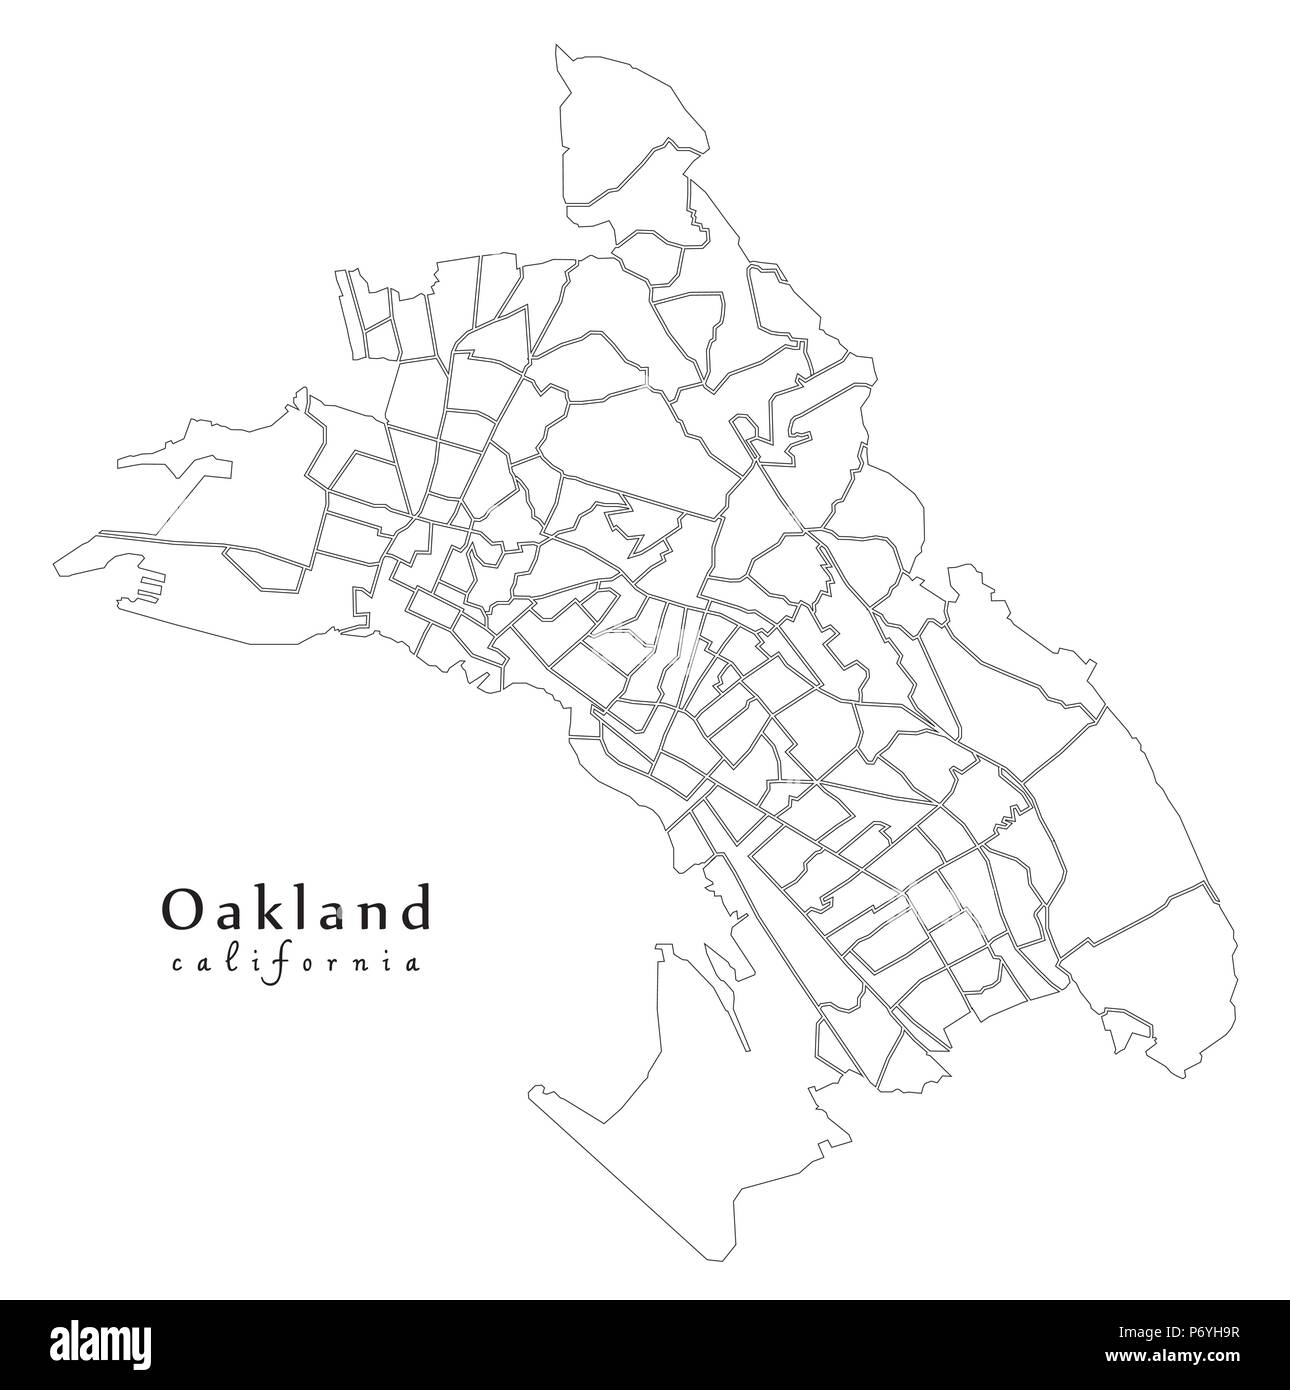 Modern City Map - Oakland California city of the USA with ... on lancaster map outline, chico map outline, inglewood map outline, fullerton map outline, san francisco map outline, washington and oregon map outline, usa map outline, inyo county map outline, avalon map outline,